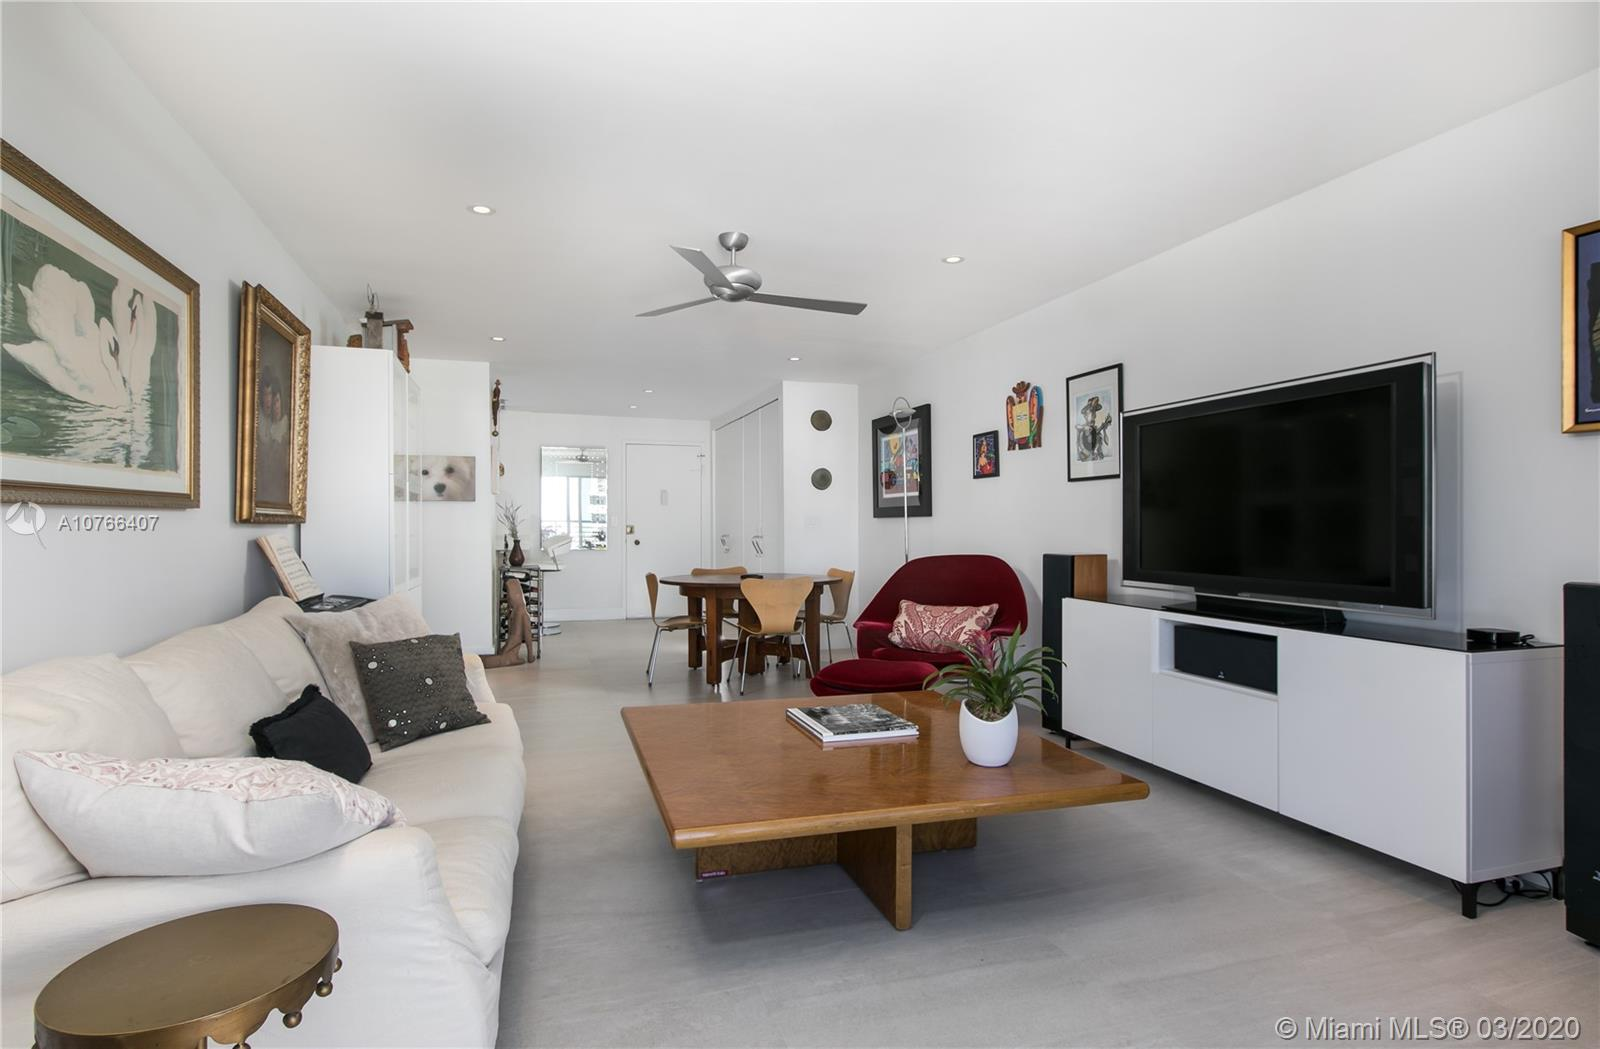 Photo of Lincoln Bay Apt 705